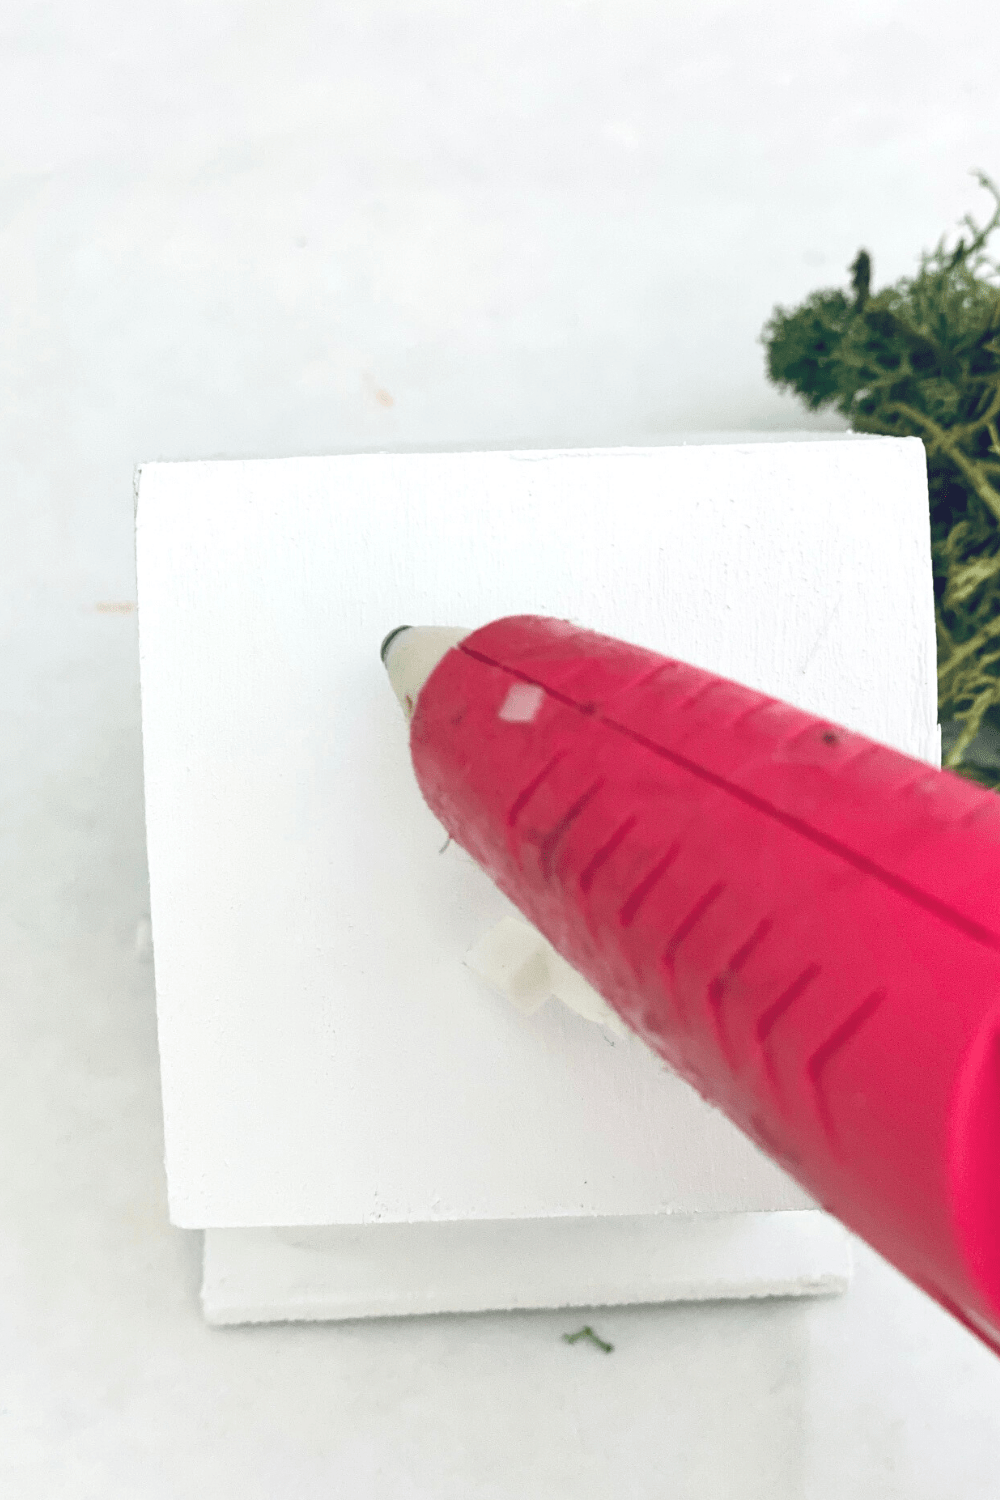 Adding hot glue to the back of the birdhouse to add to a pretty spring wreath -How-to at DearCreatives.com